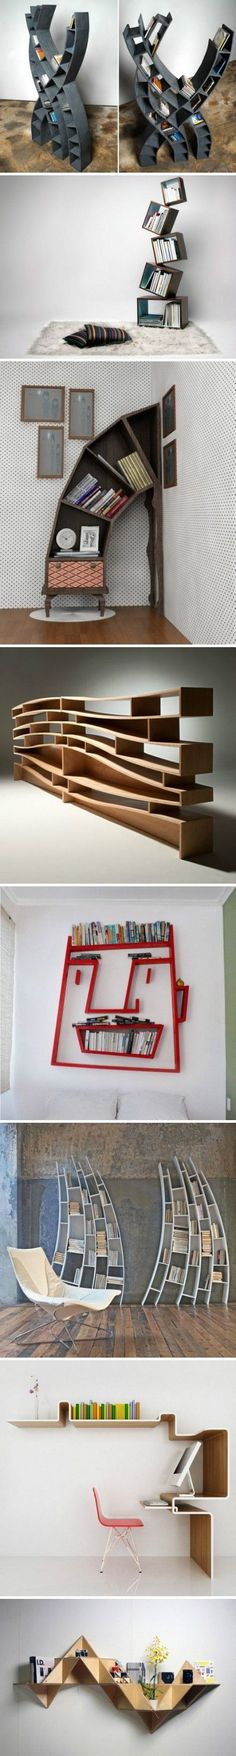 DIY Shelves Trendy Ideas : Best DIY-Decor Projects: Unique DIY Book Shelves